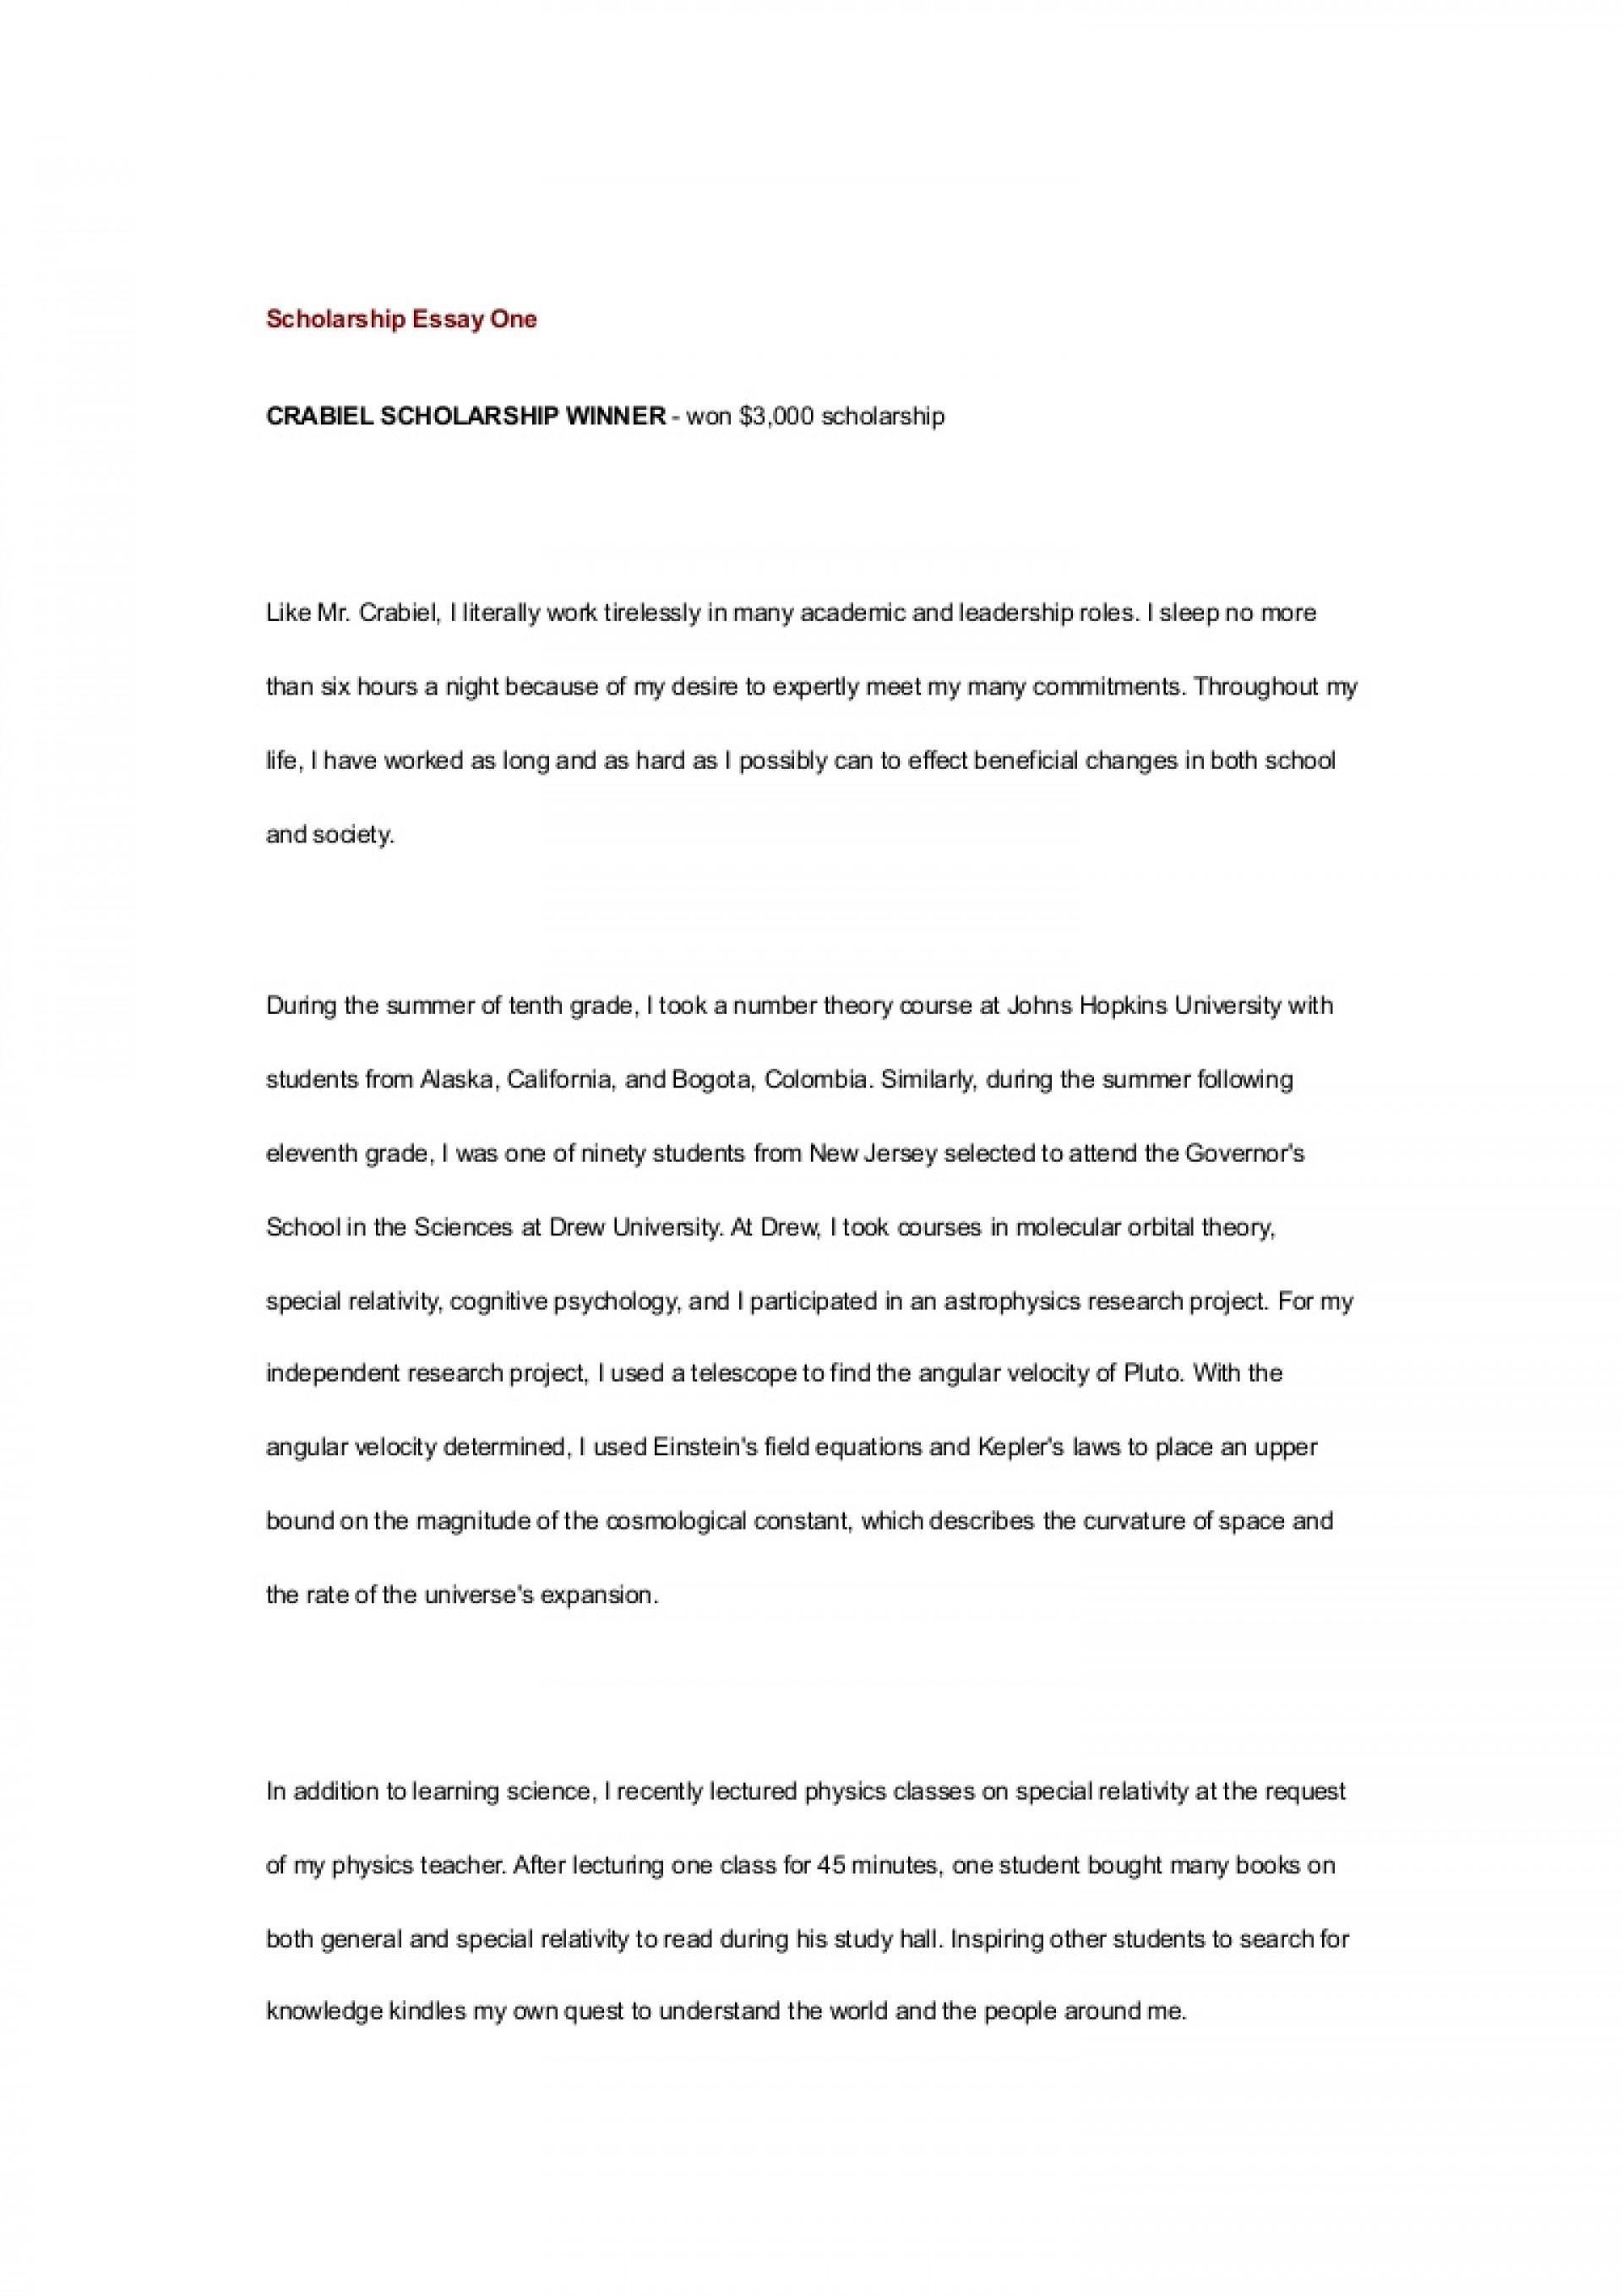 006 Scholarship Essays Financial Need Scholarshipessayone Phpapp01 Thumbnail Impressive Essay Examples Pdf 1920